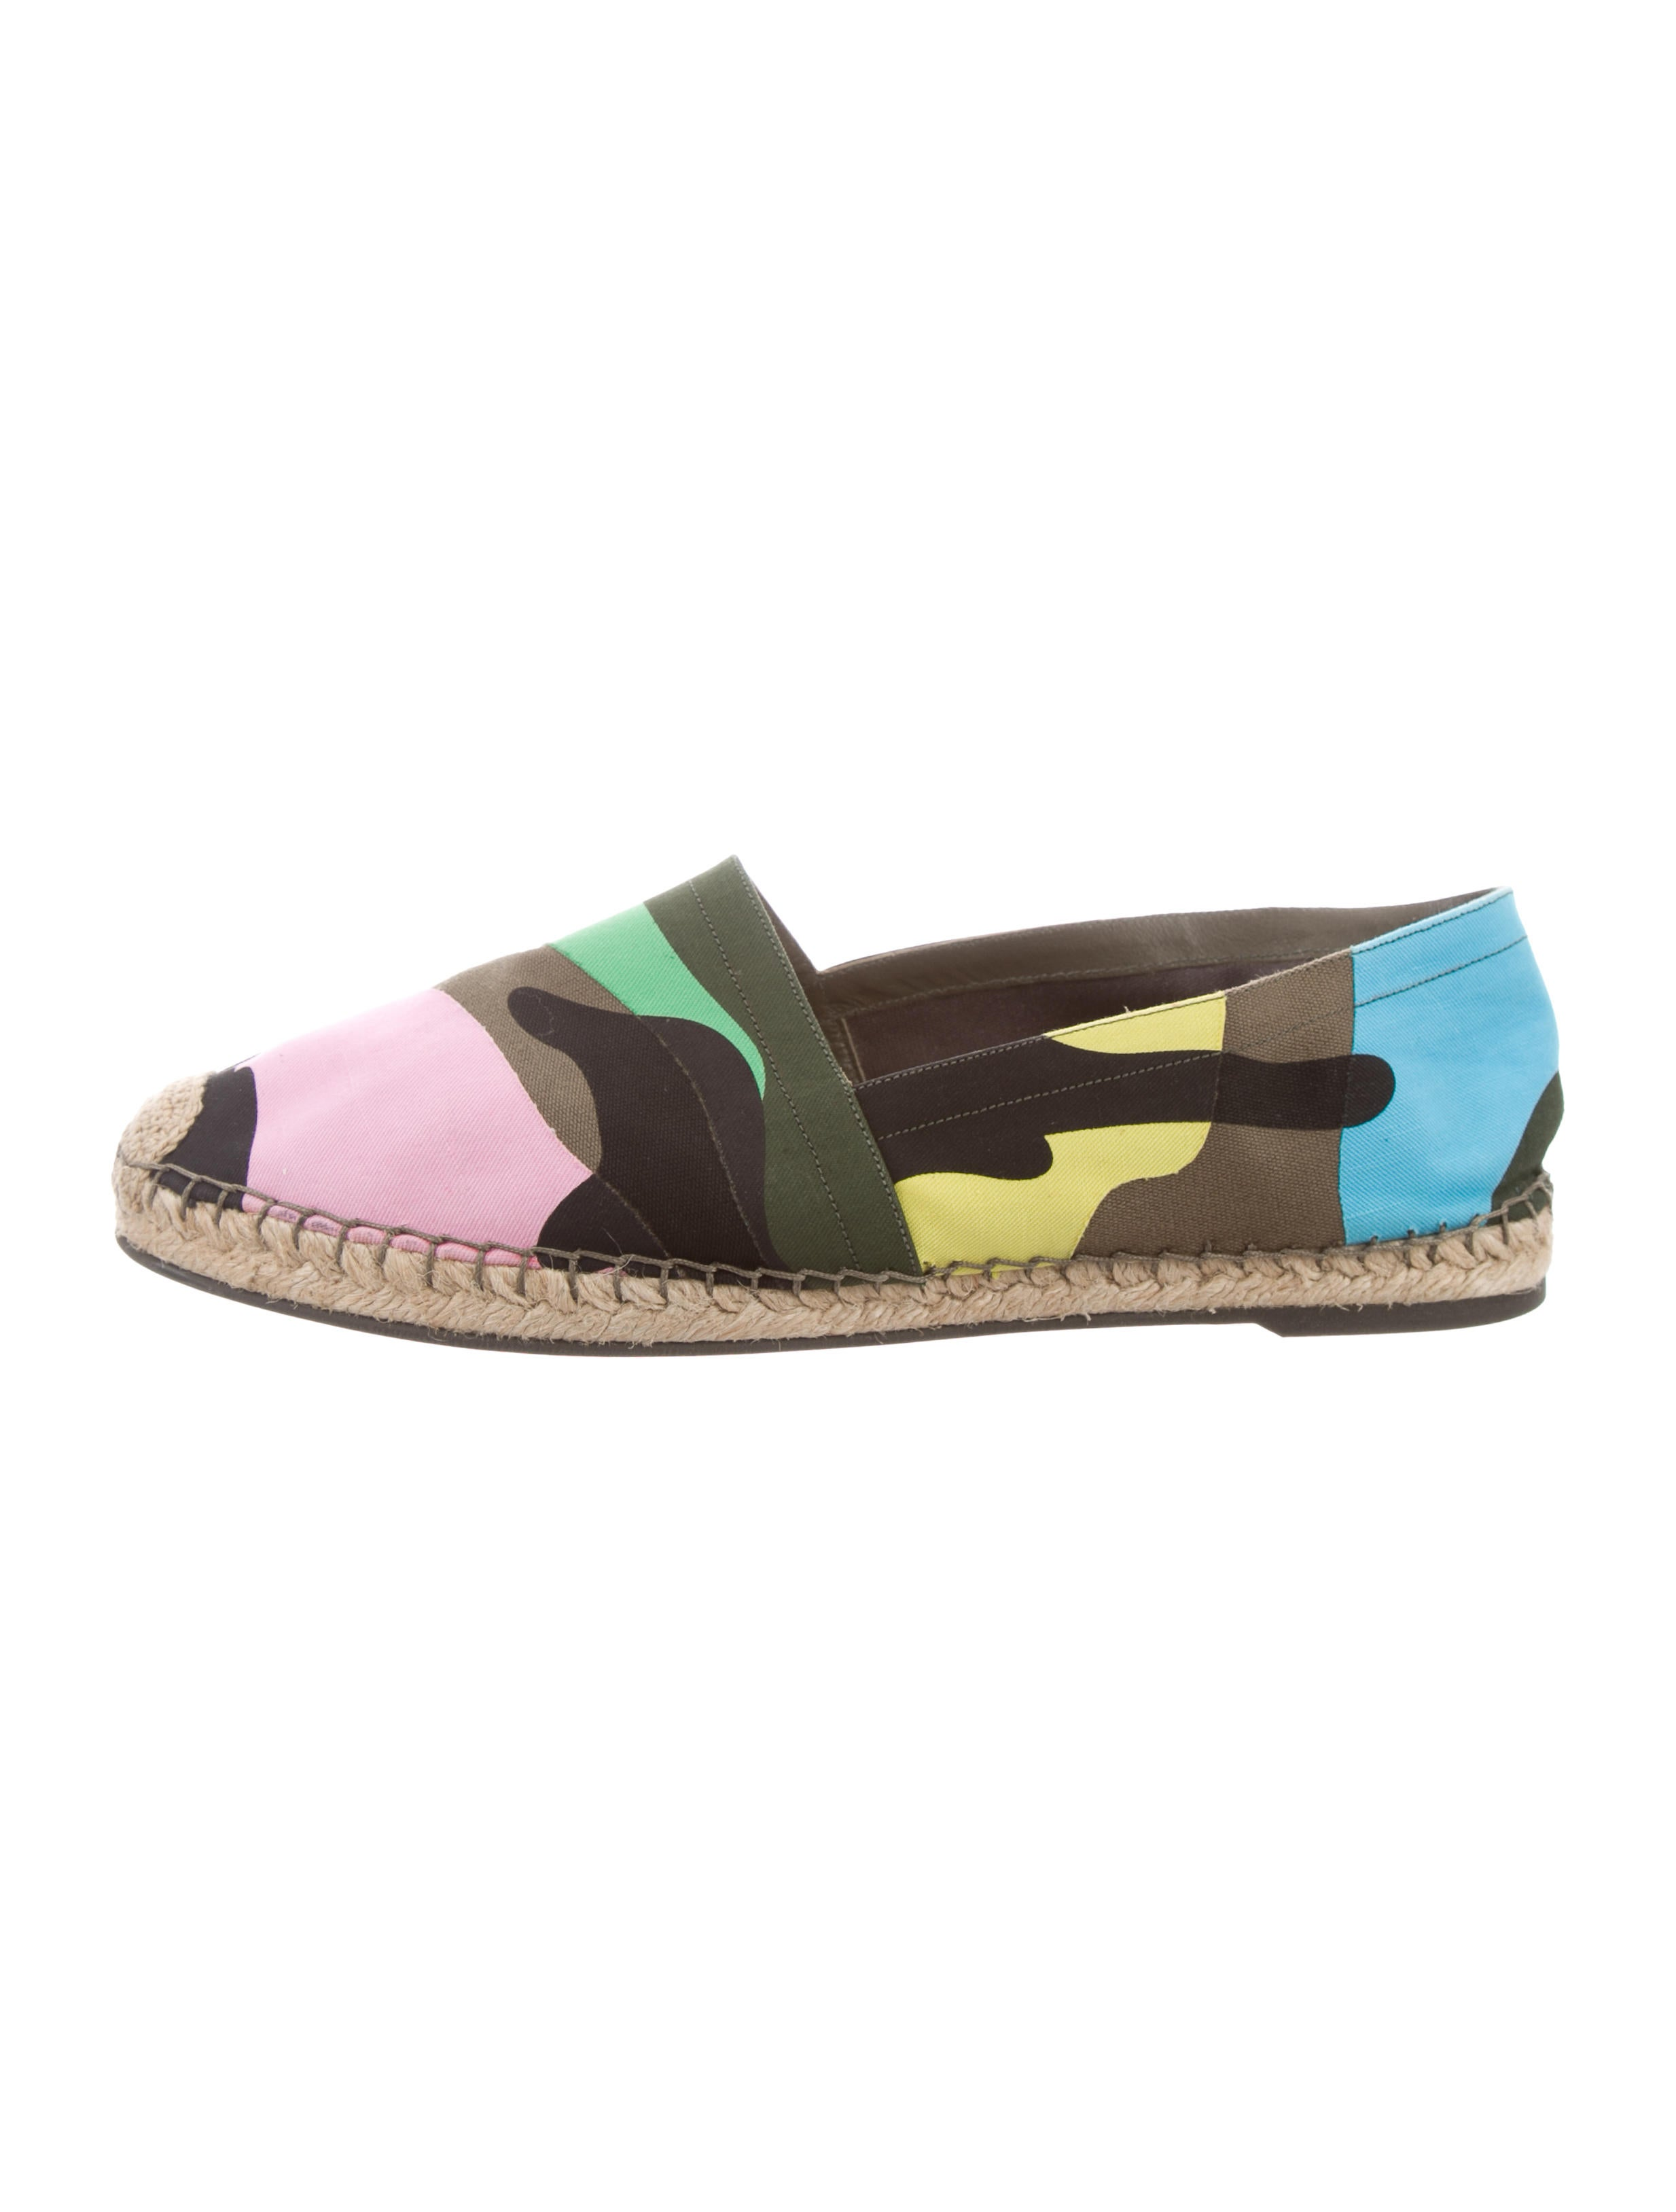 0c73e3bf1db Valentino Psychedelic Camouflage Espadrilles - Shoes - VAL85106 ...